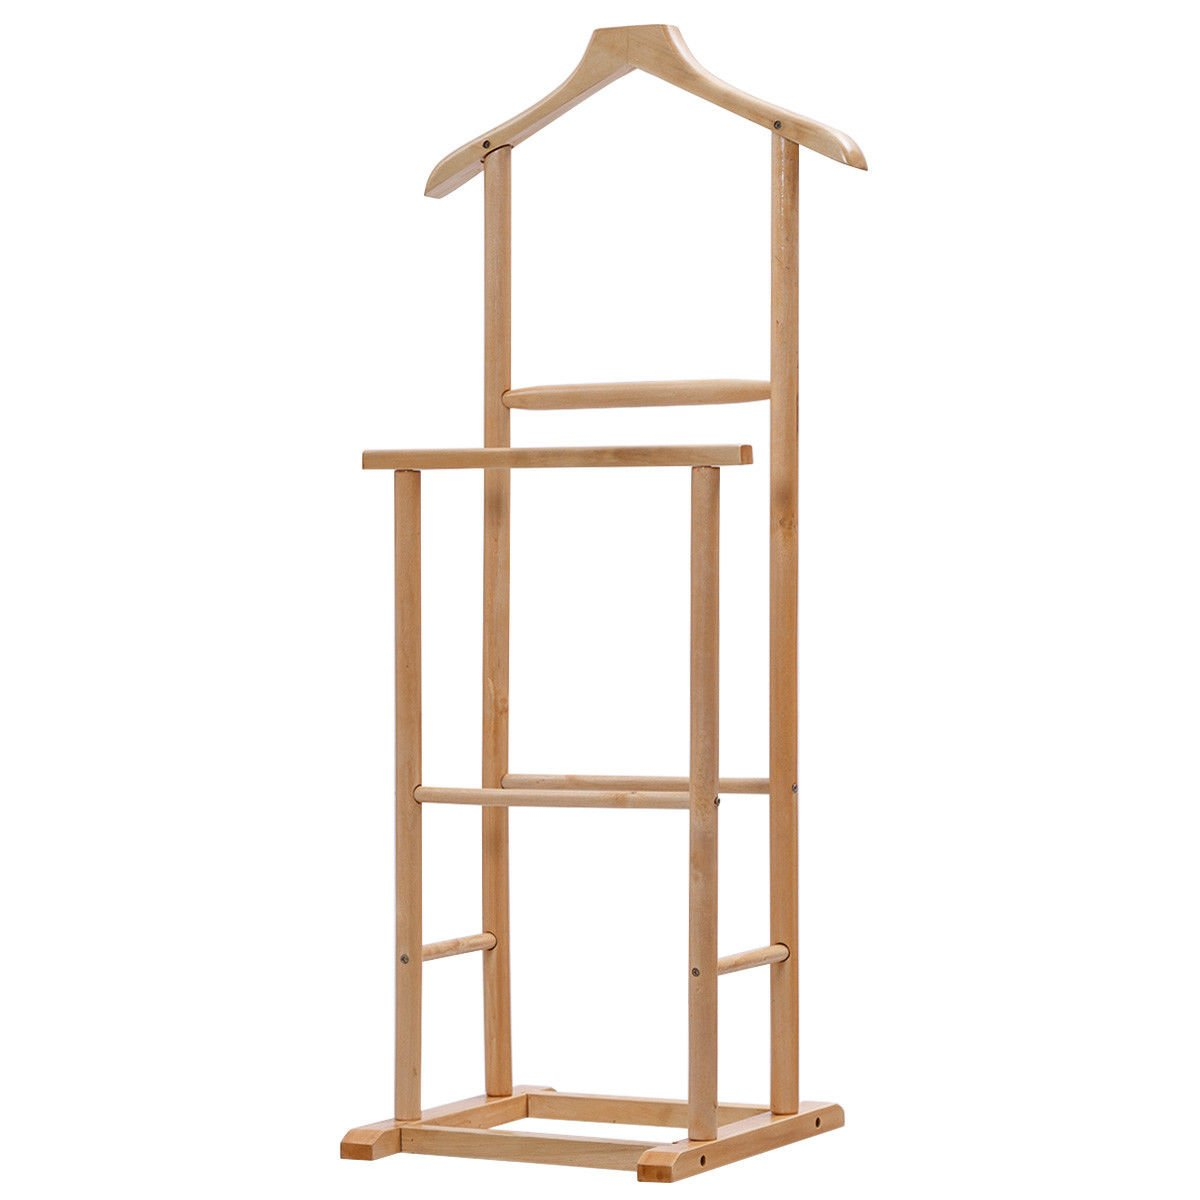 Globe House Products GHP Home 19.0'' Lx14.2 Wx42.2 H Lightweight and Durable Men Double Suit Shelf/Rack